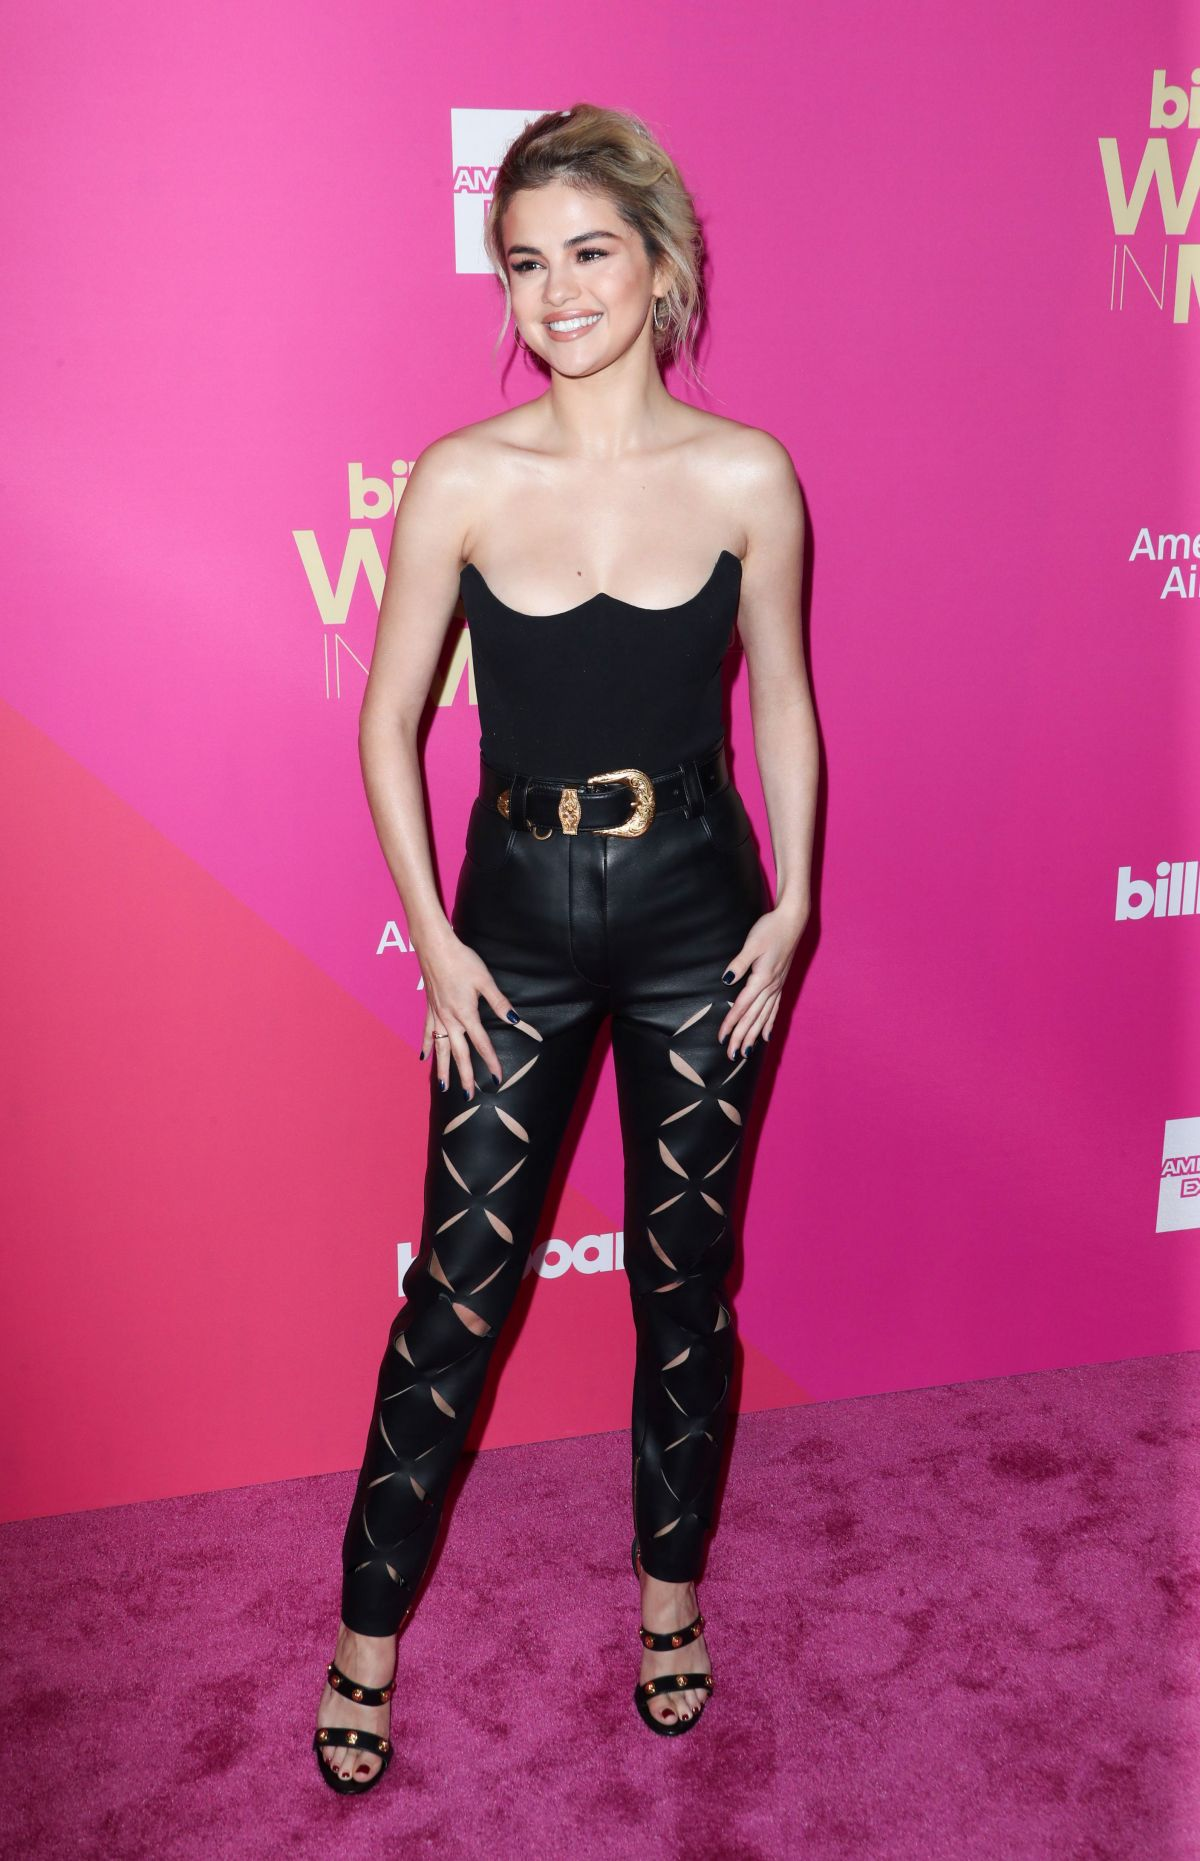 selena gomez billboard awards selena gomez at 2017